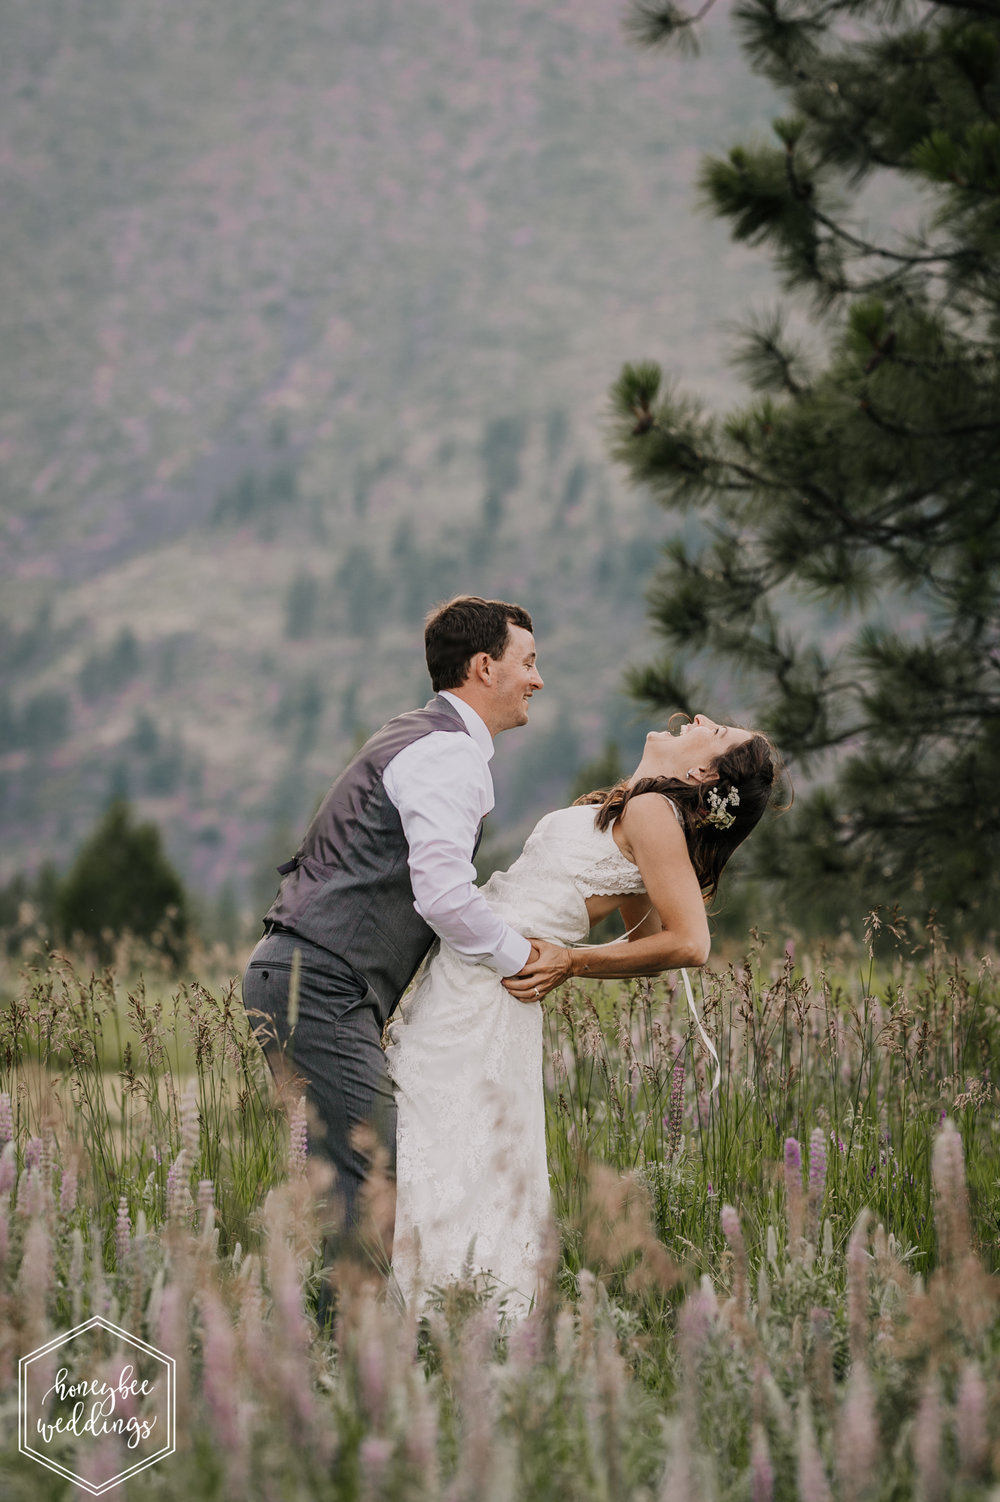 534 White Raven Wedding_Montana Wedding Photographer_Honeybee Weddings_ Meghan Maloney + Arza Hammond 2018-9490.jpg